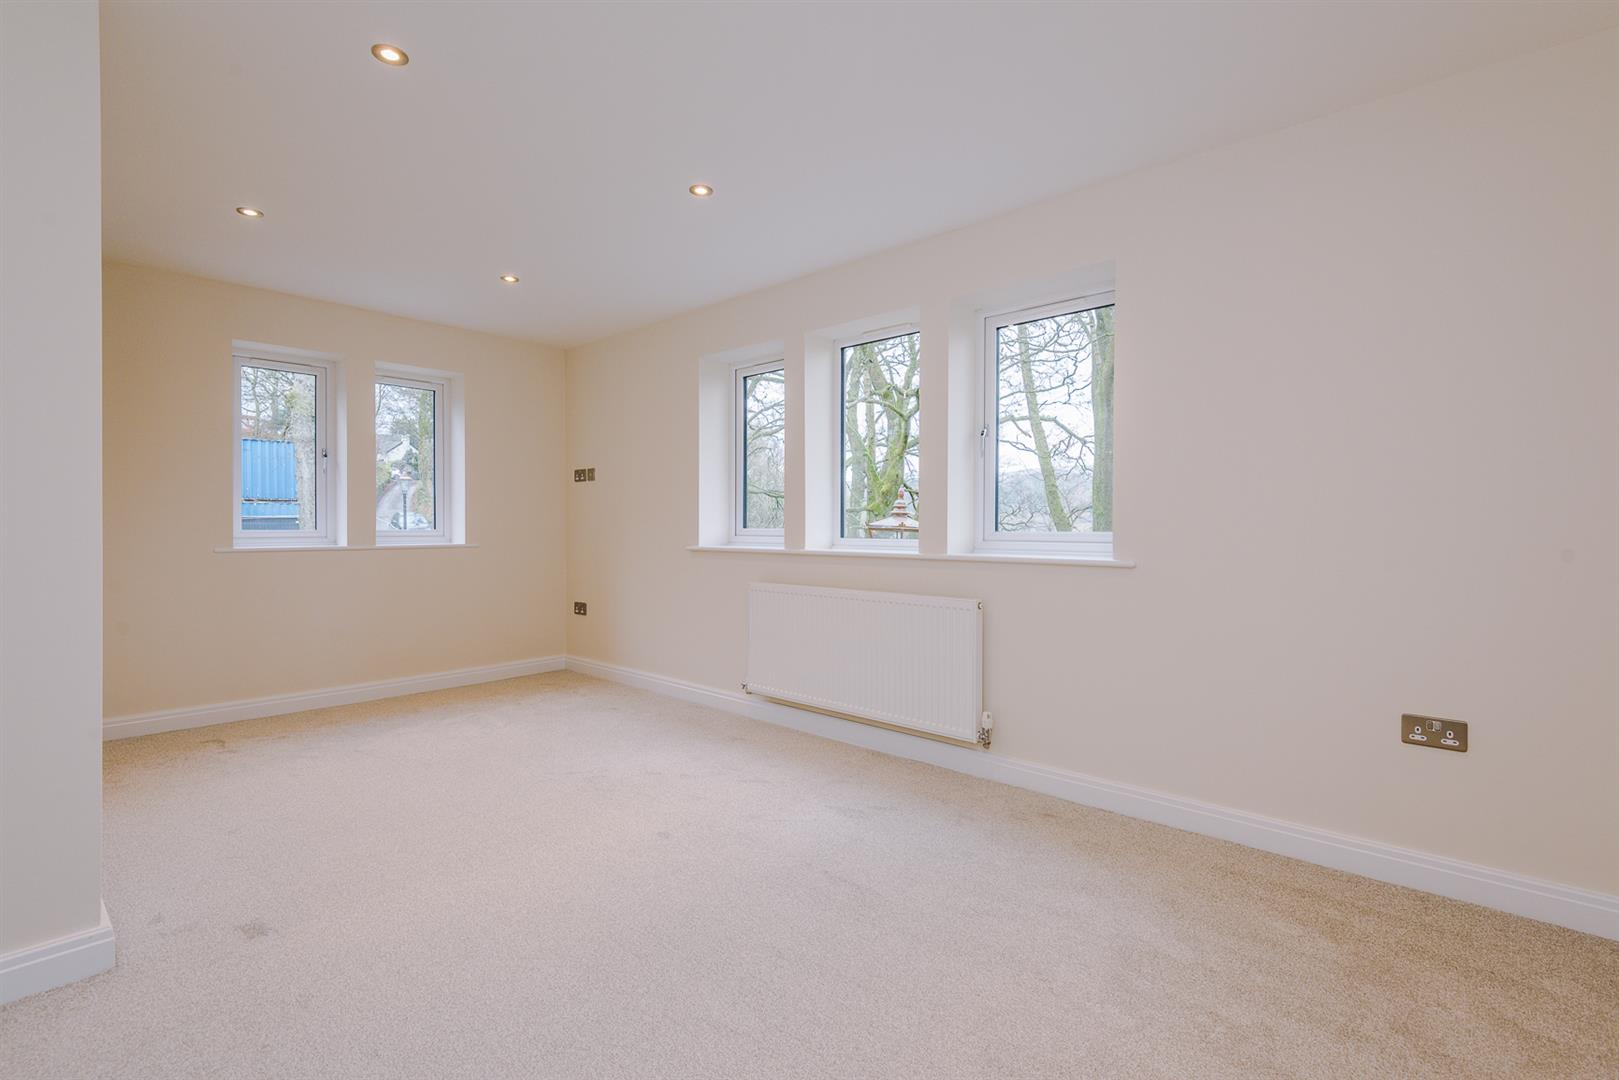 5 Bedroom House For Sale Image 32